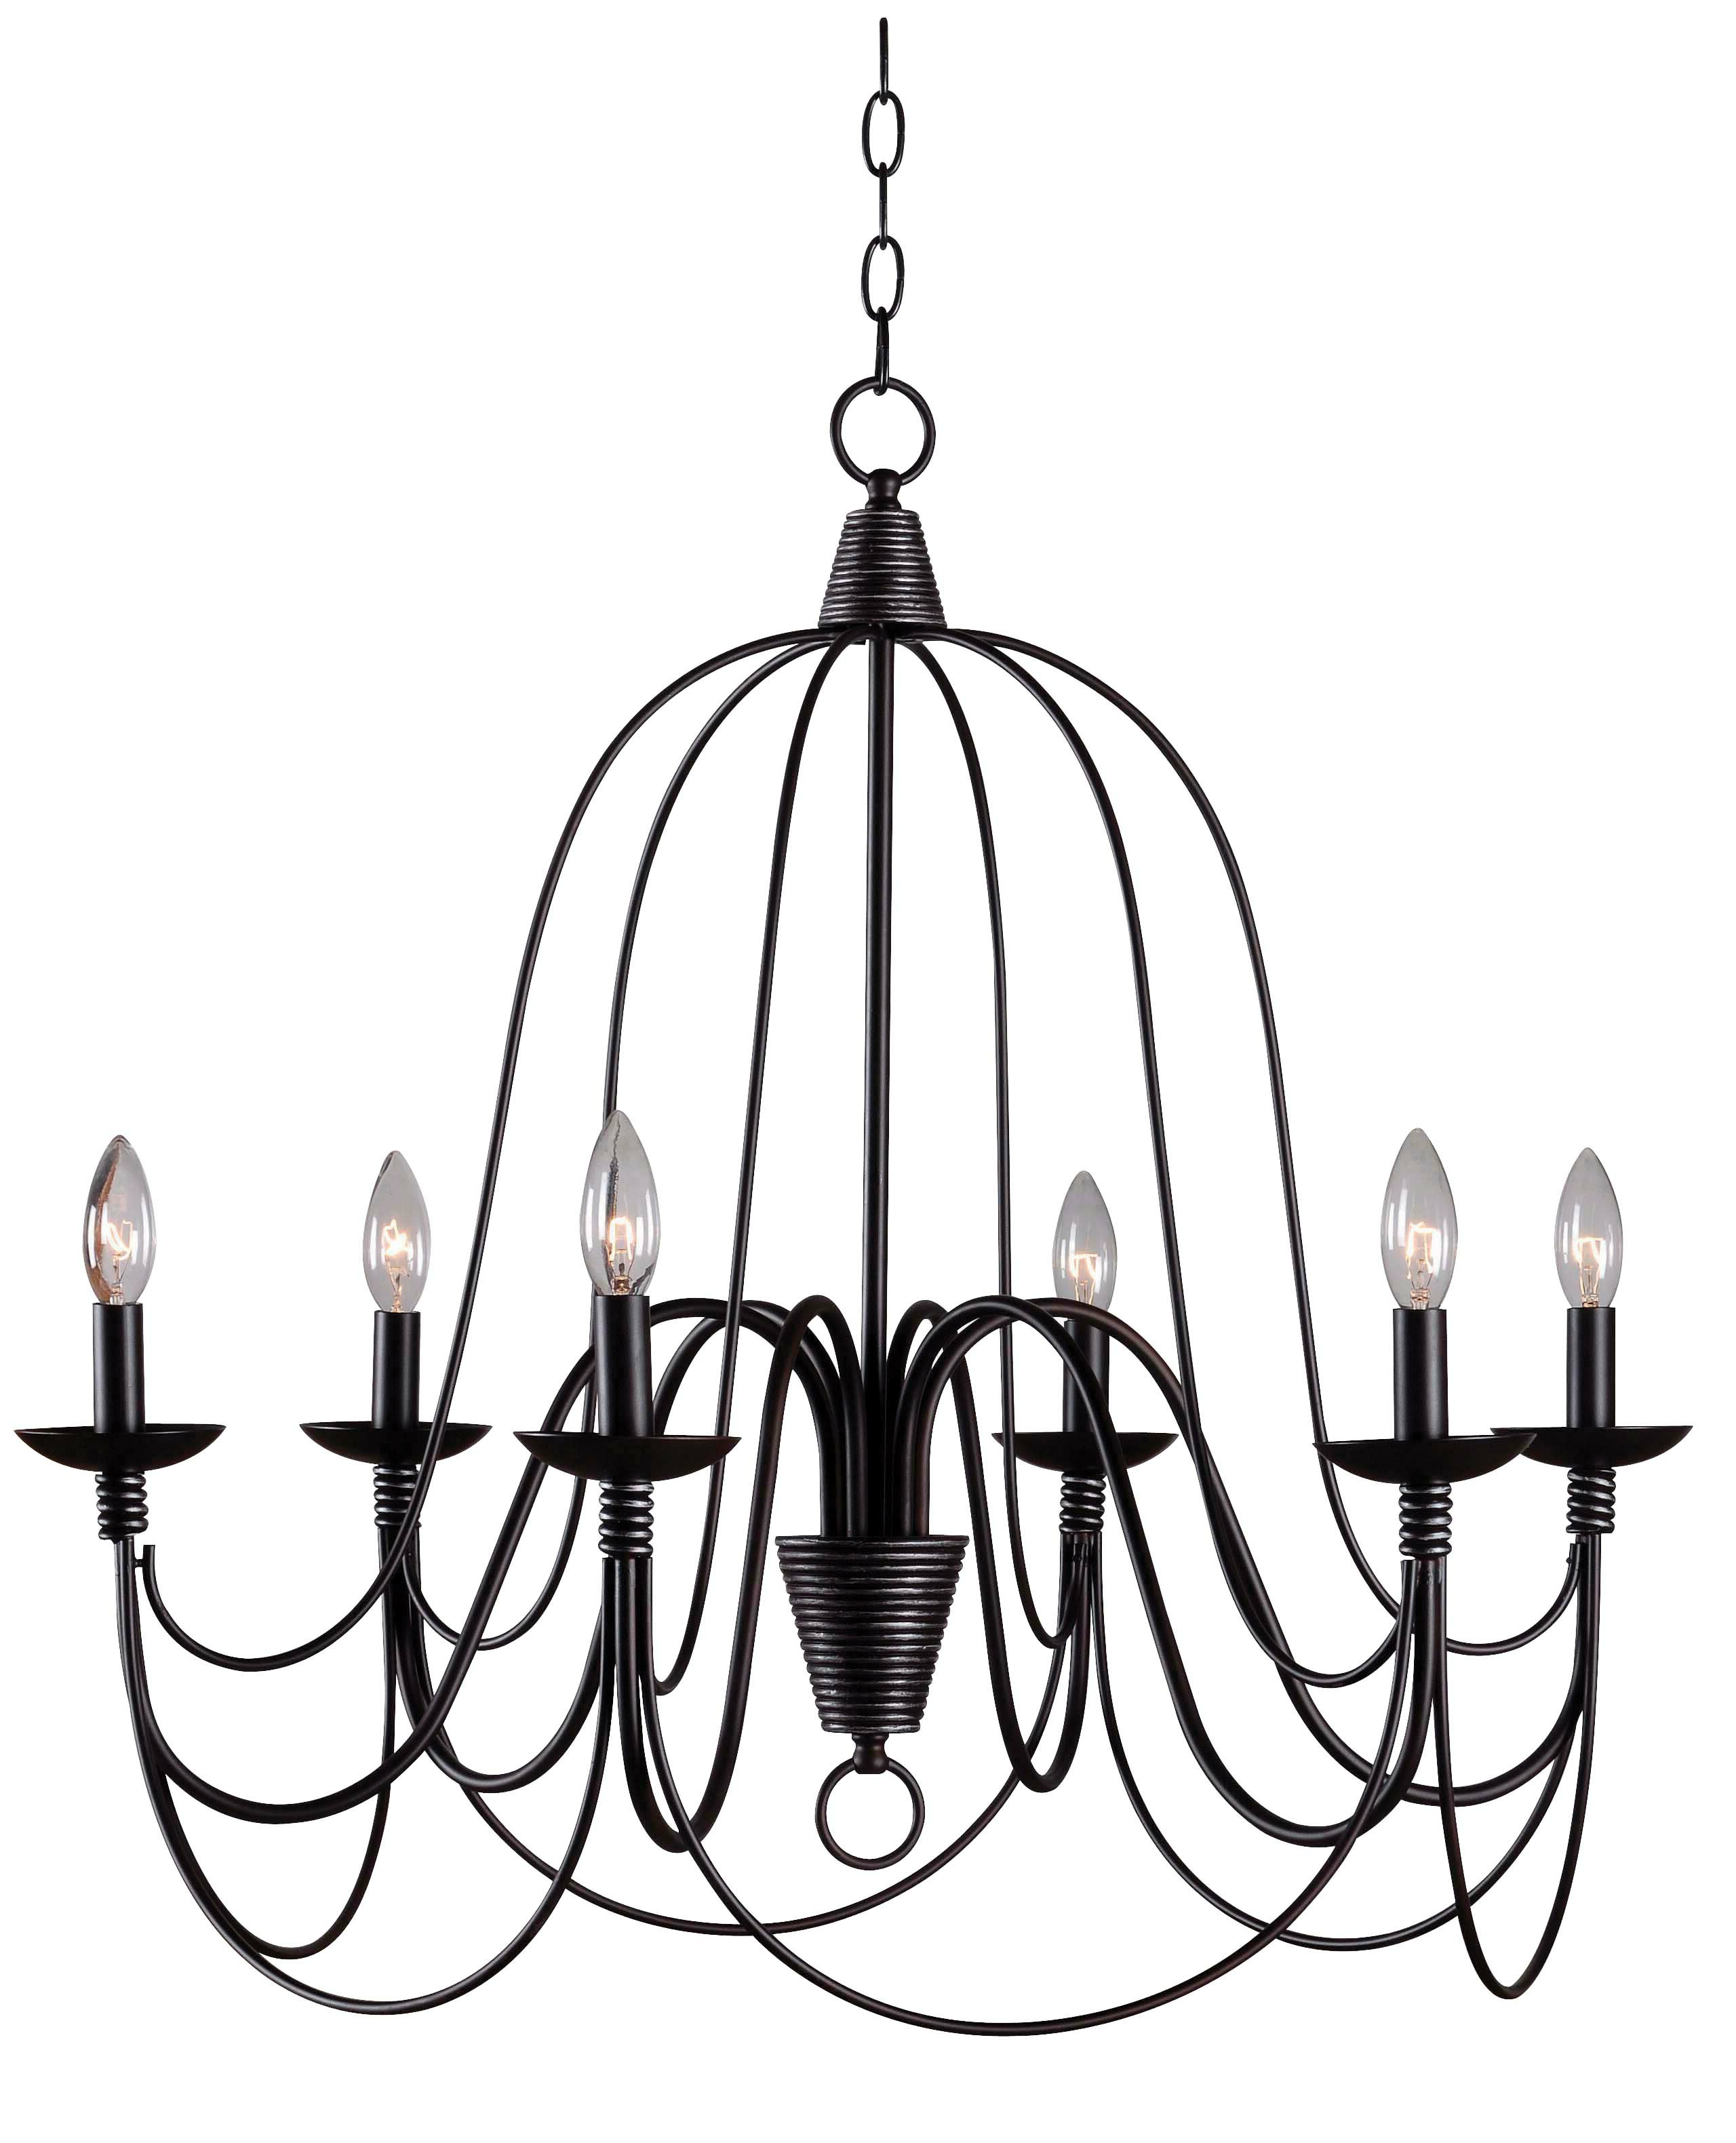 Kollman 6 Light Candle Style Chandelier In Well Known Camilla 9 Light Candle Style Chandeliers (View 16 of 20)